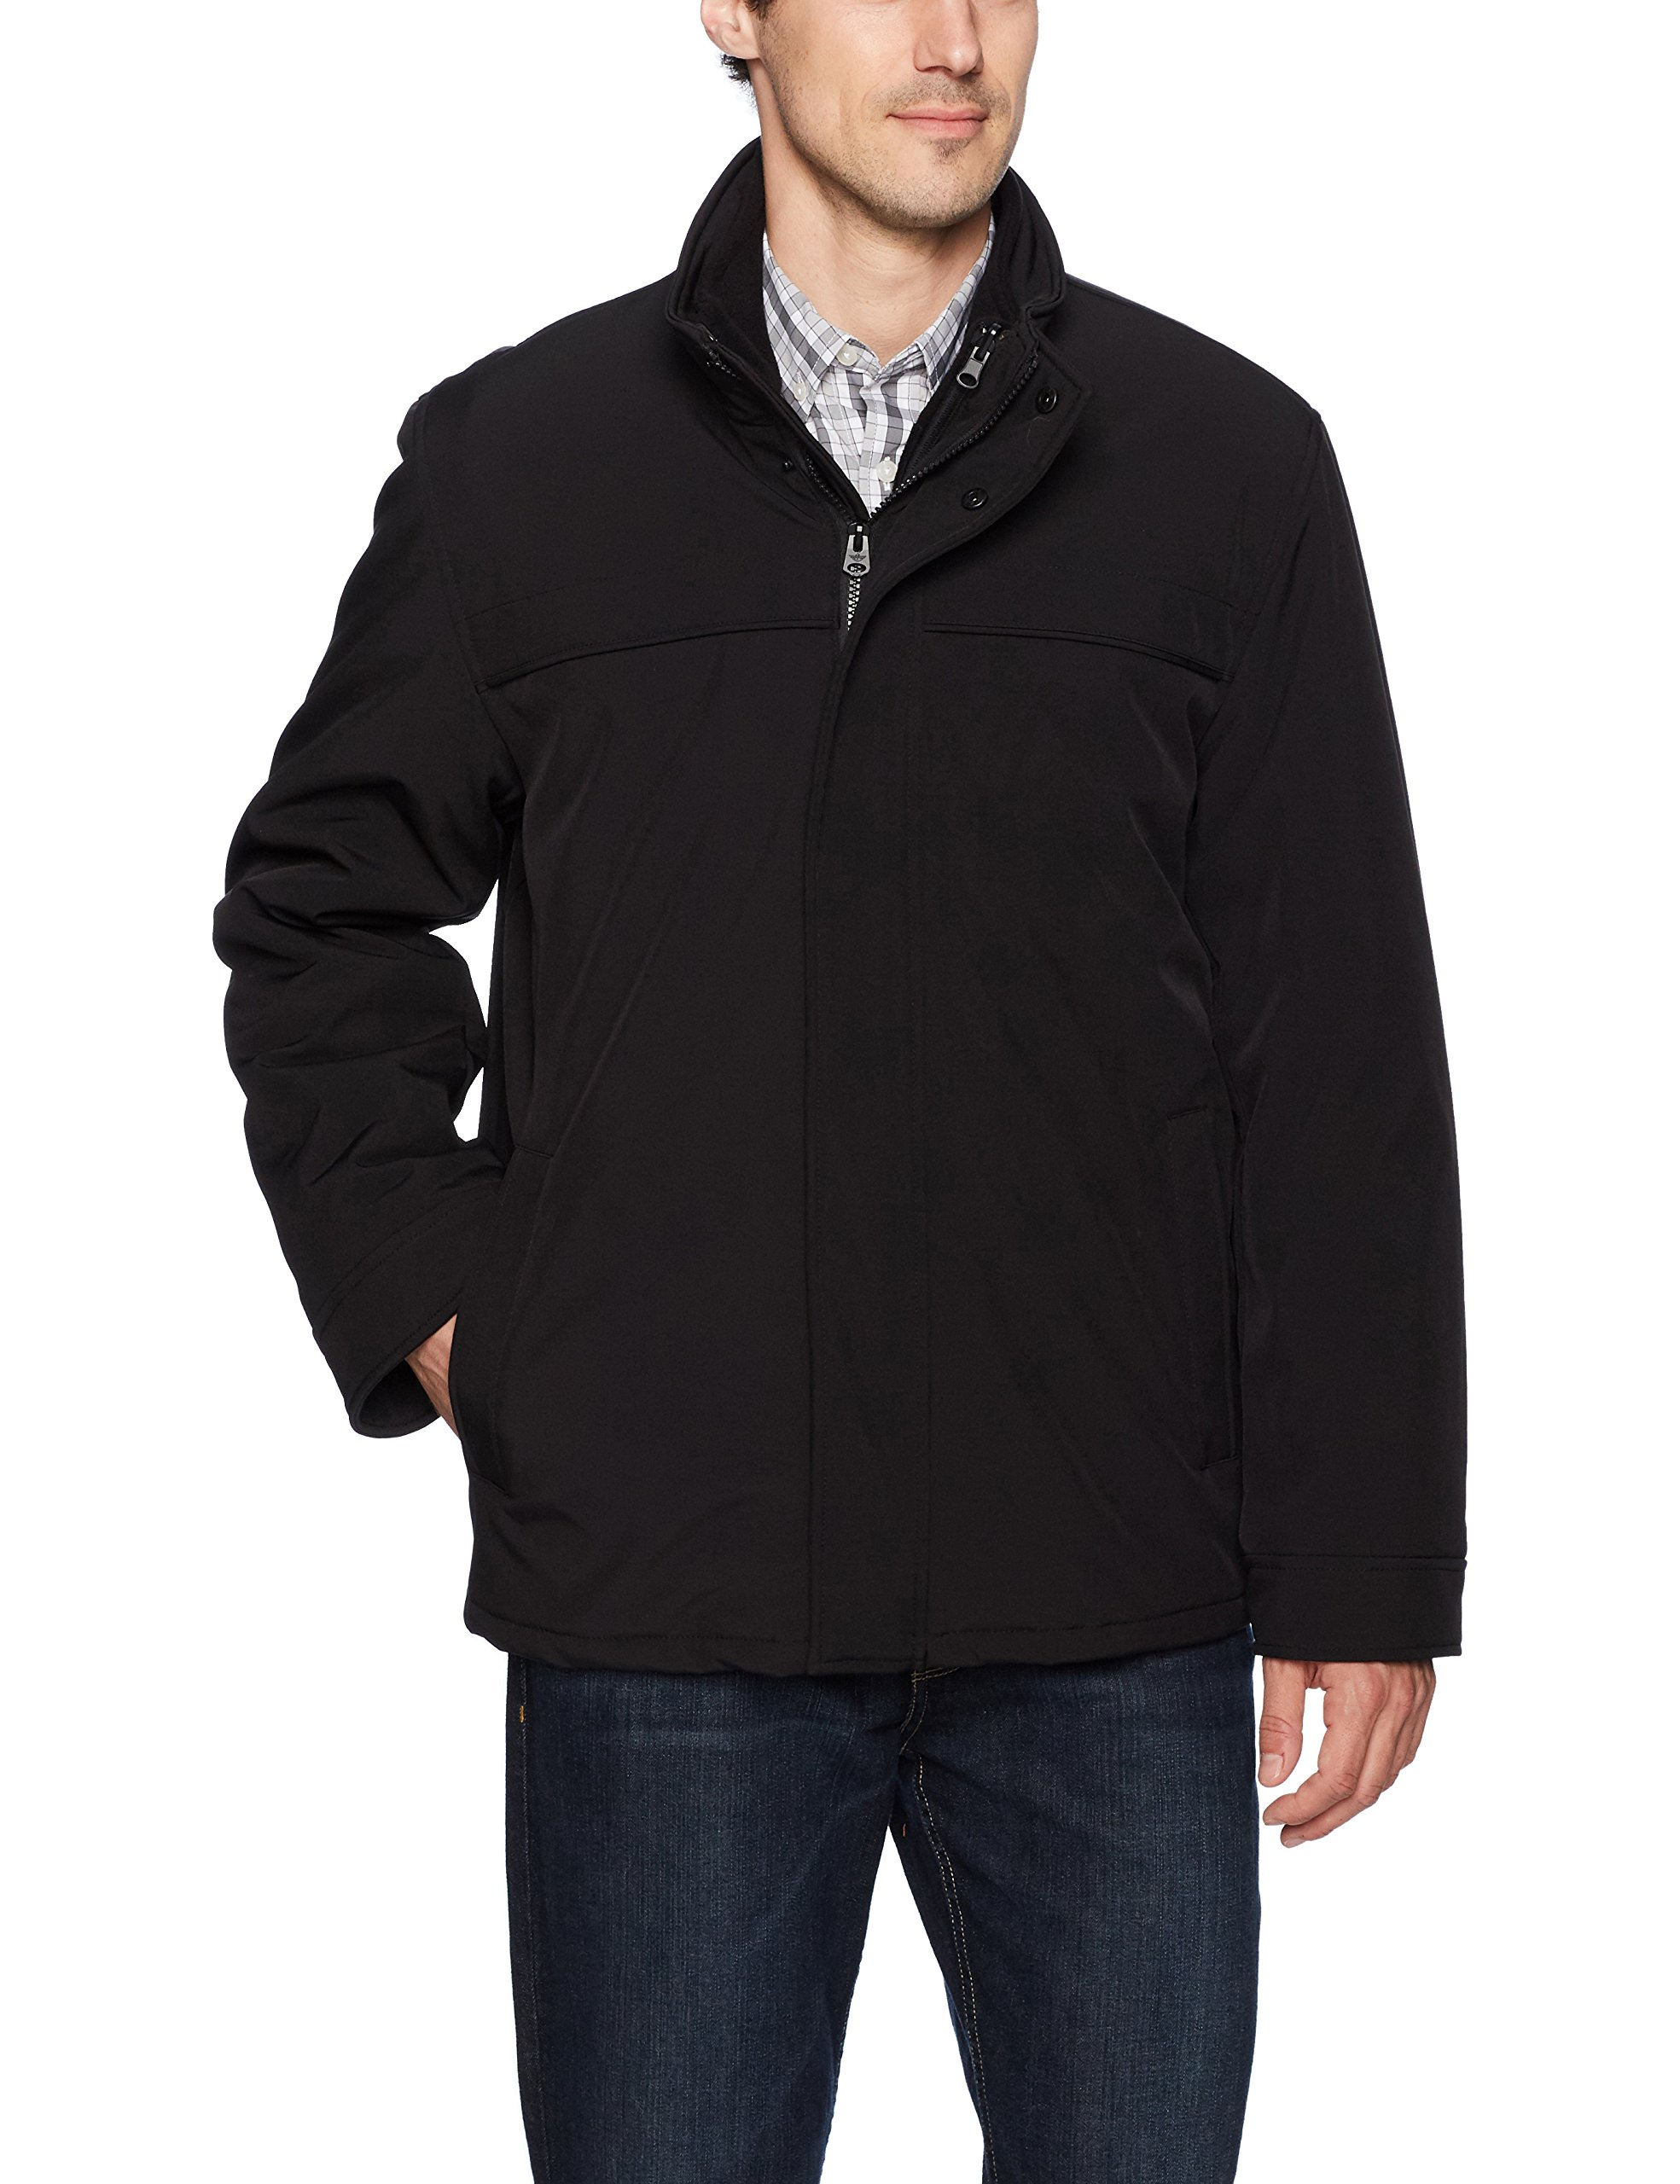 Dockers Men's 3-in-1 Soft Shell Systems Jacket with Fleece Liner, Black, Large